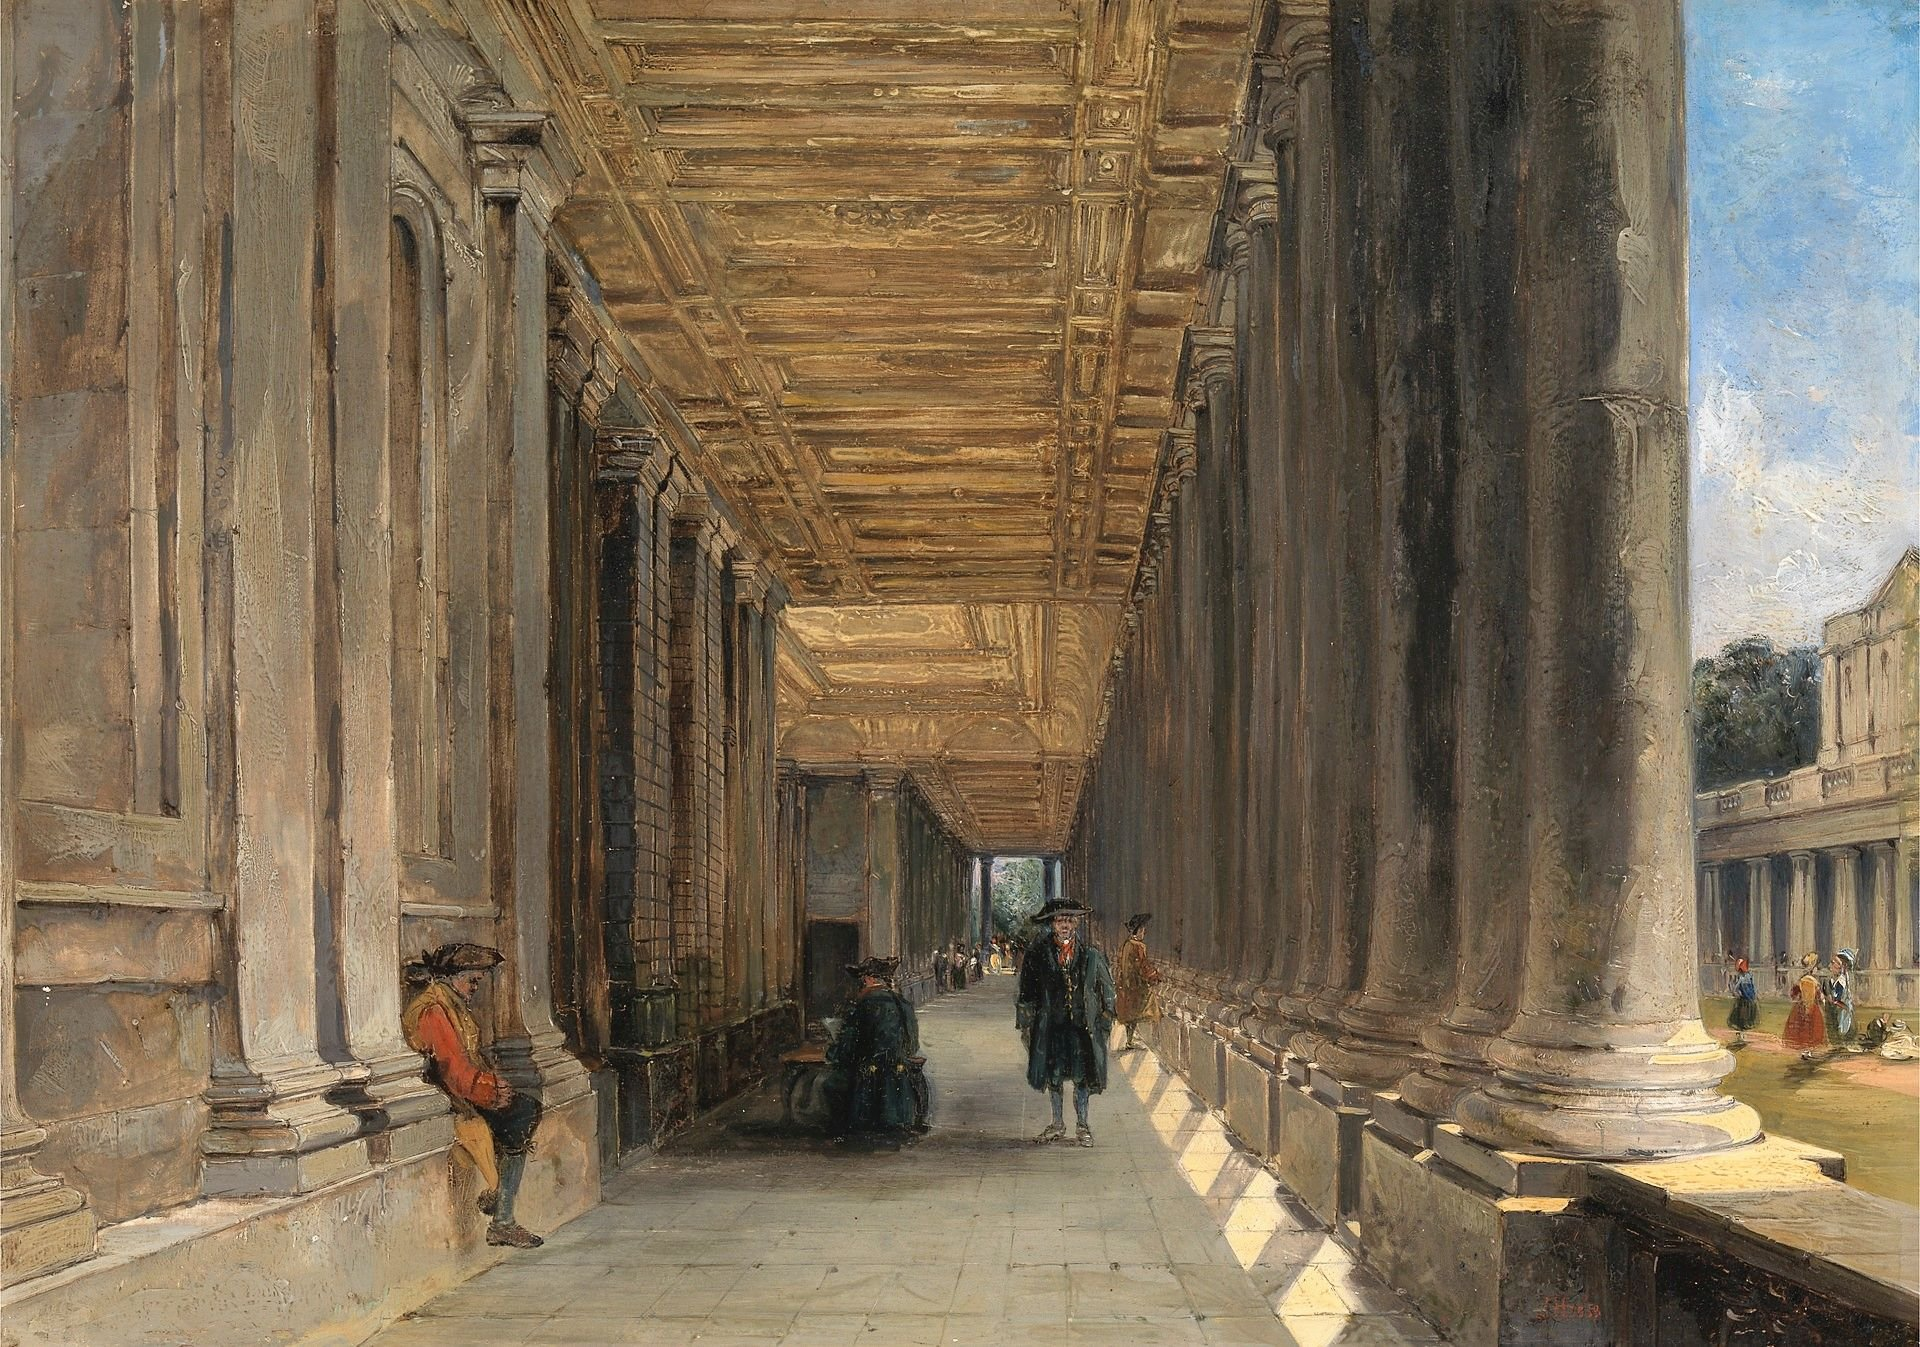 The Colonnade of Queen Mary's House